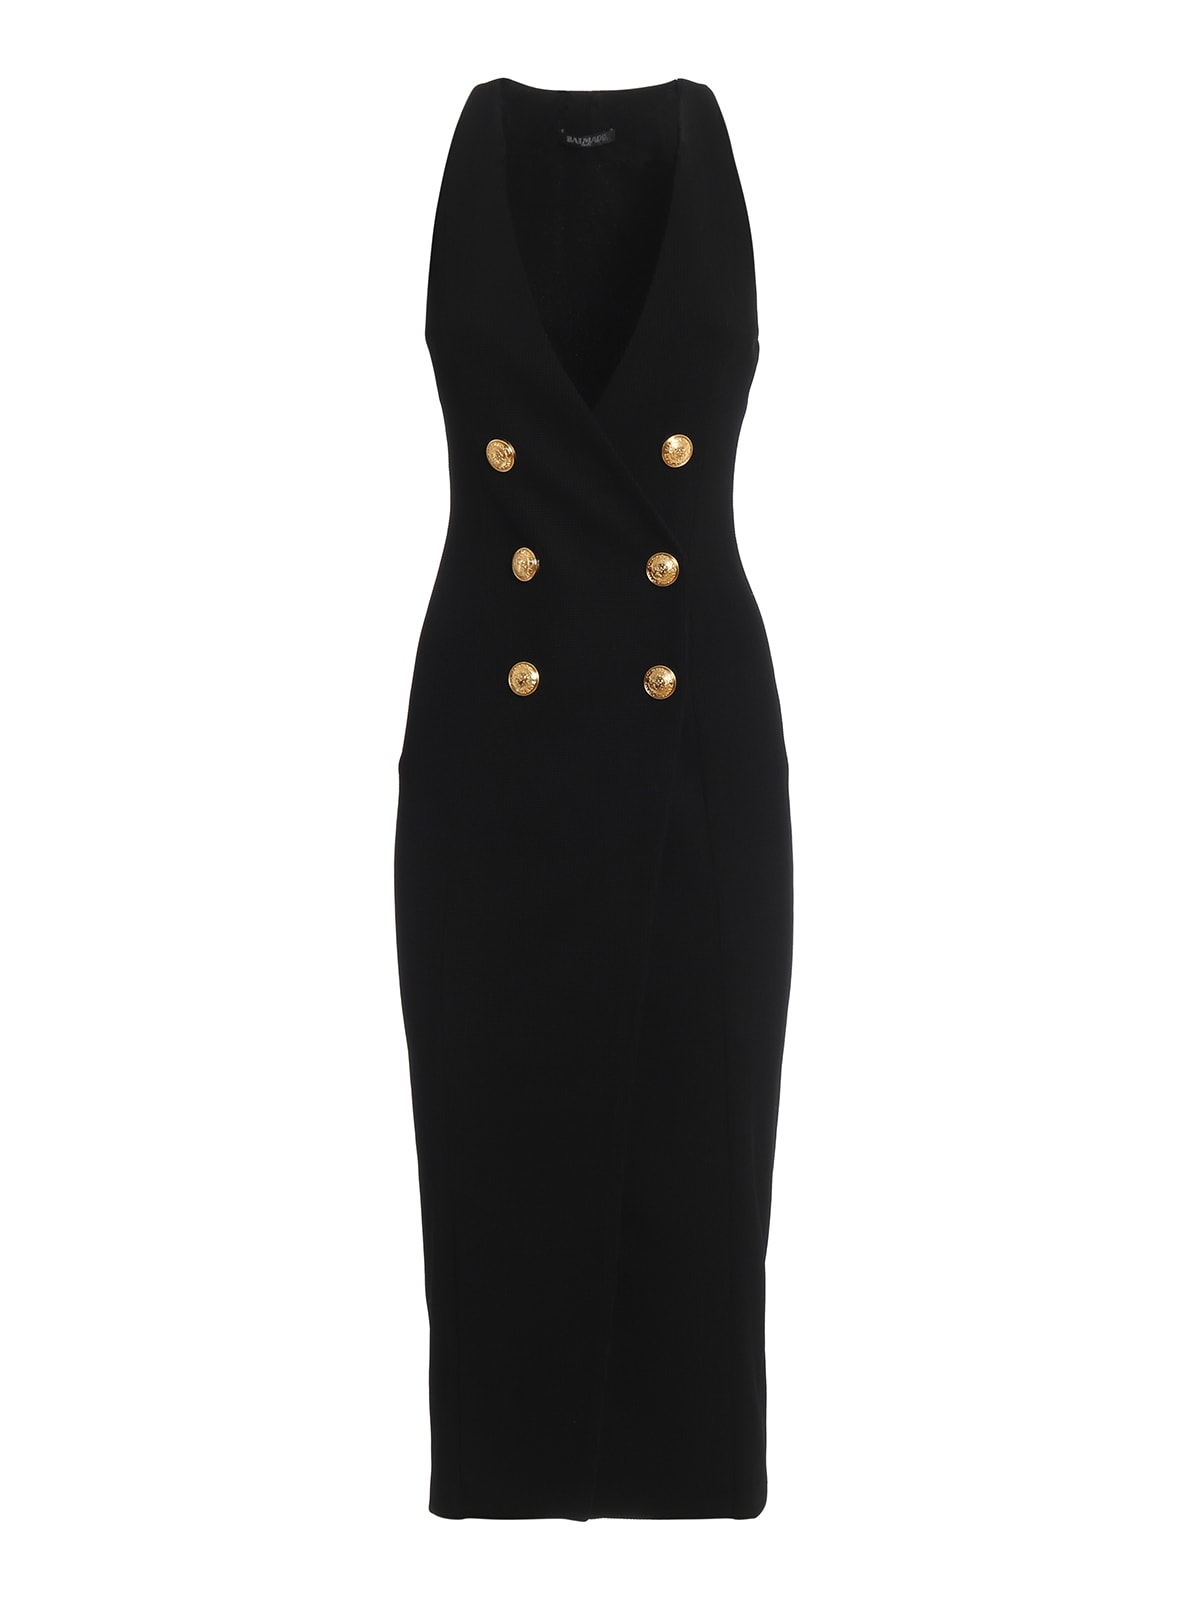 Balmain Double-breasted Sleeveless Black Dress